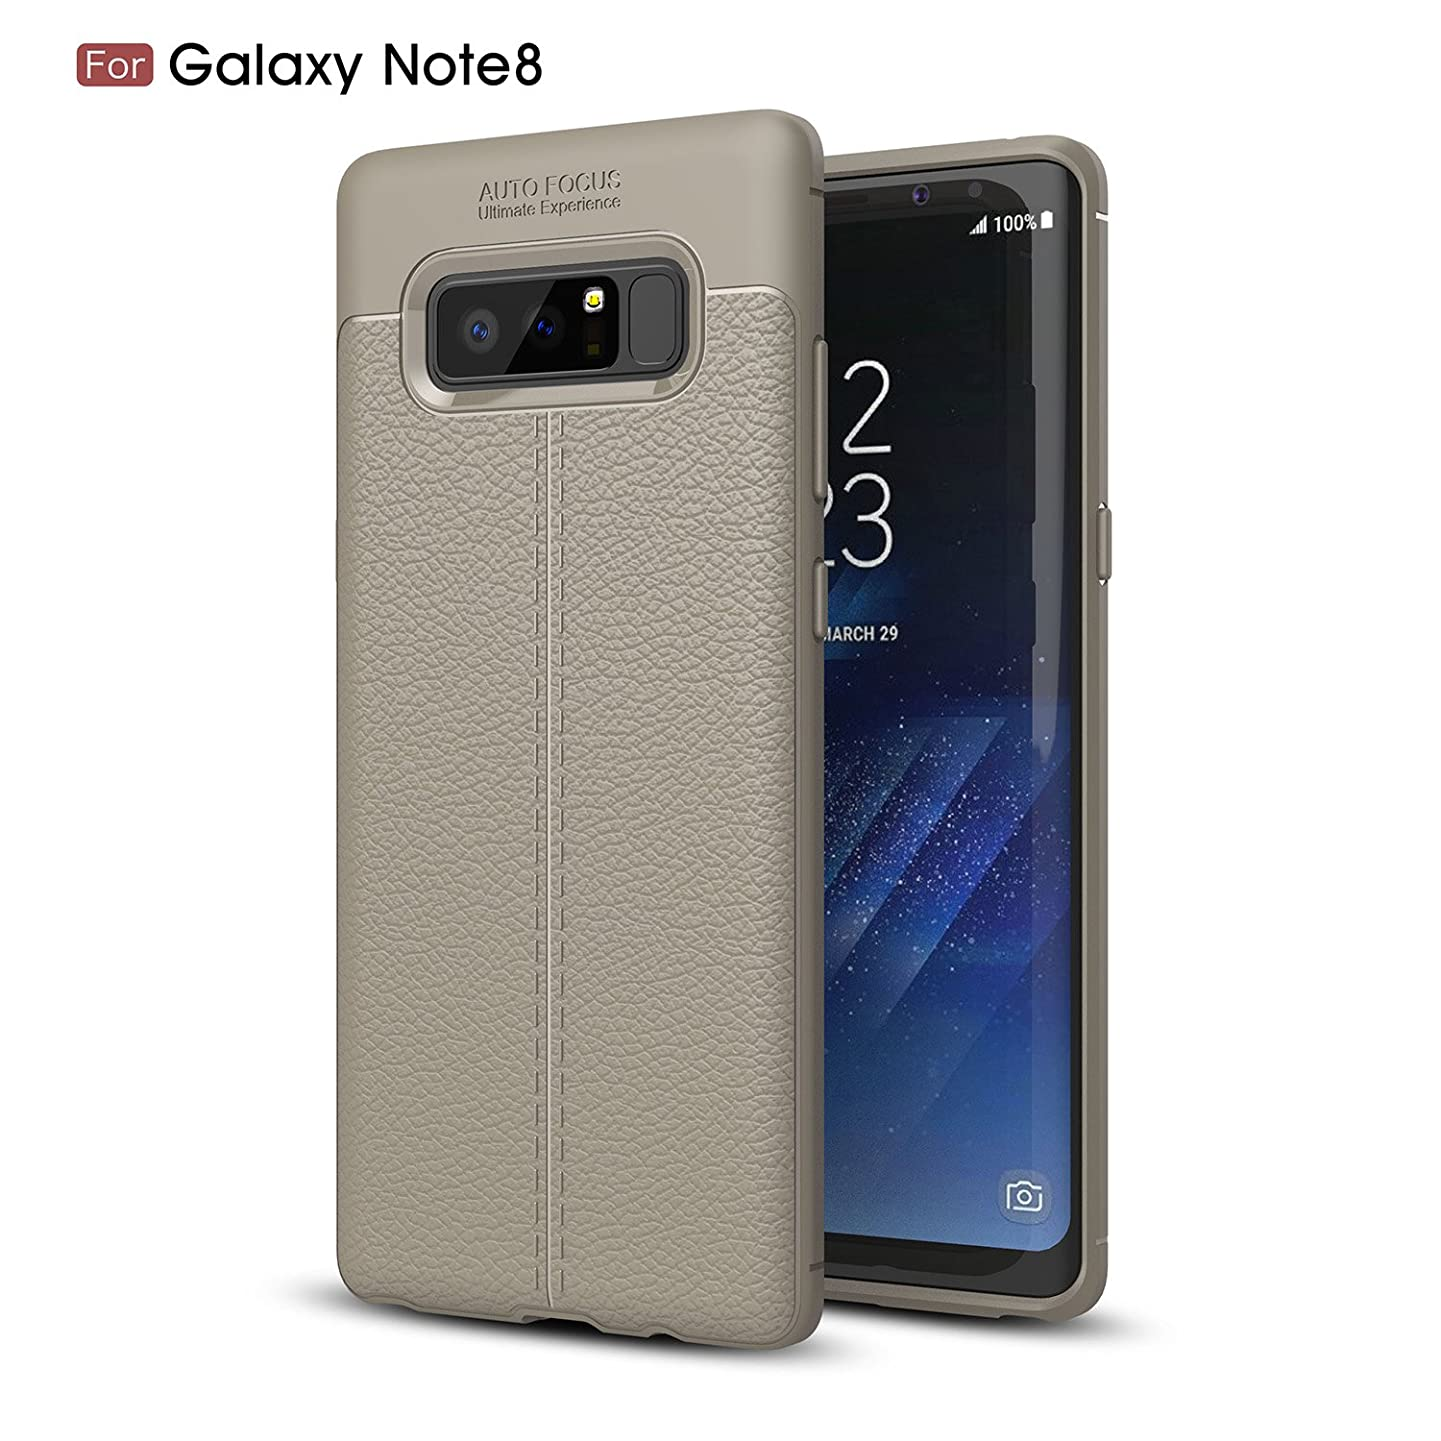 for Samsung Galaxy Note 8|Note 9 Phone Case Thin Slim Silicone Litchi Grain TPU Leather Shock-Absorption Protective Cover